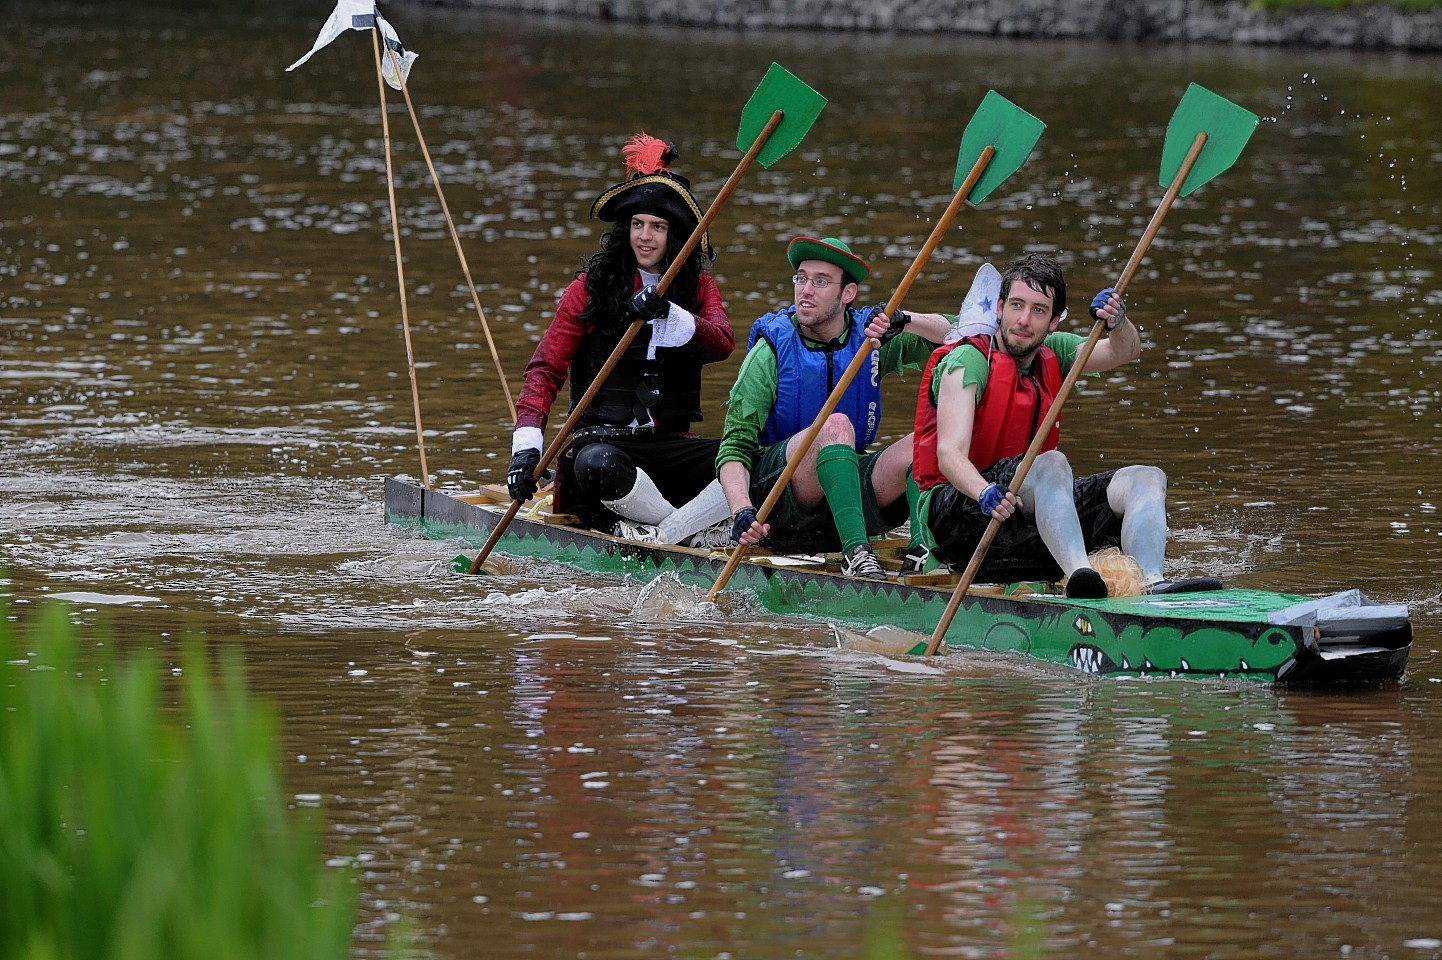 Previous raft race competitors on Peter Pan's alligator